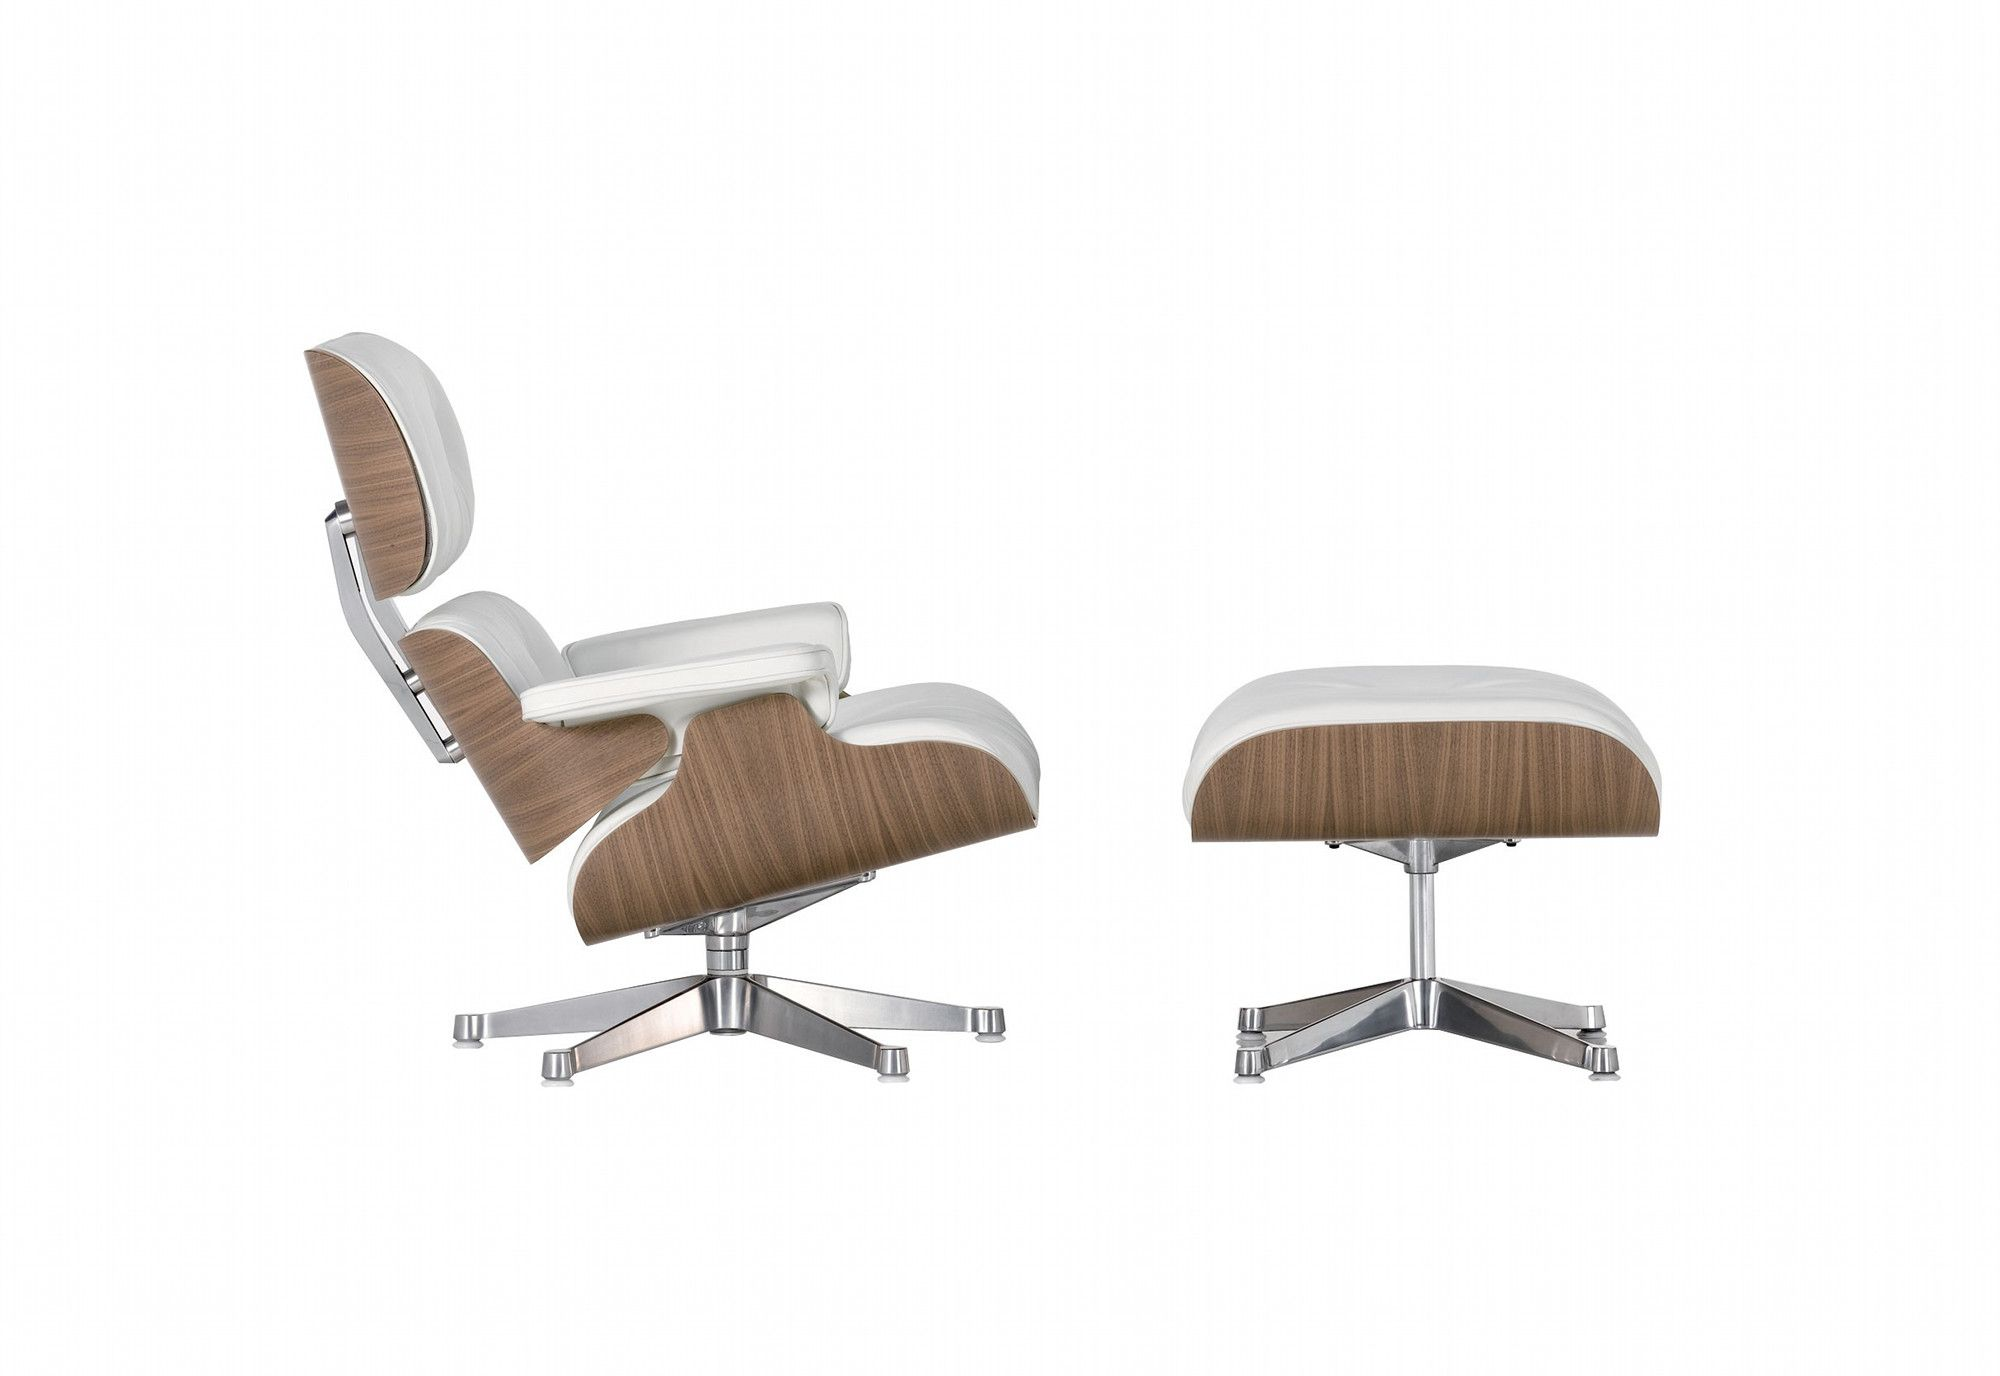 Tremendous Lounge Chair Nussbaum Weiss Creativecarmelina Interior Chair Design Creativecarmelinacom